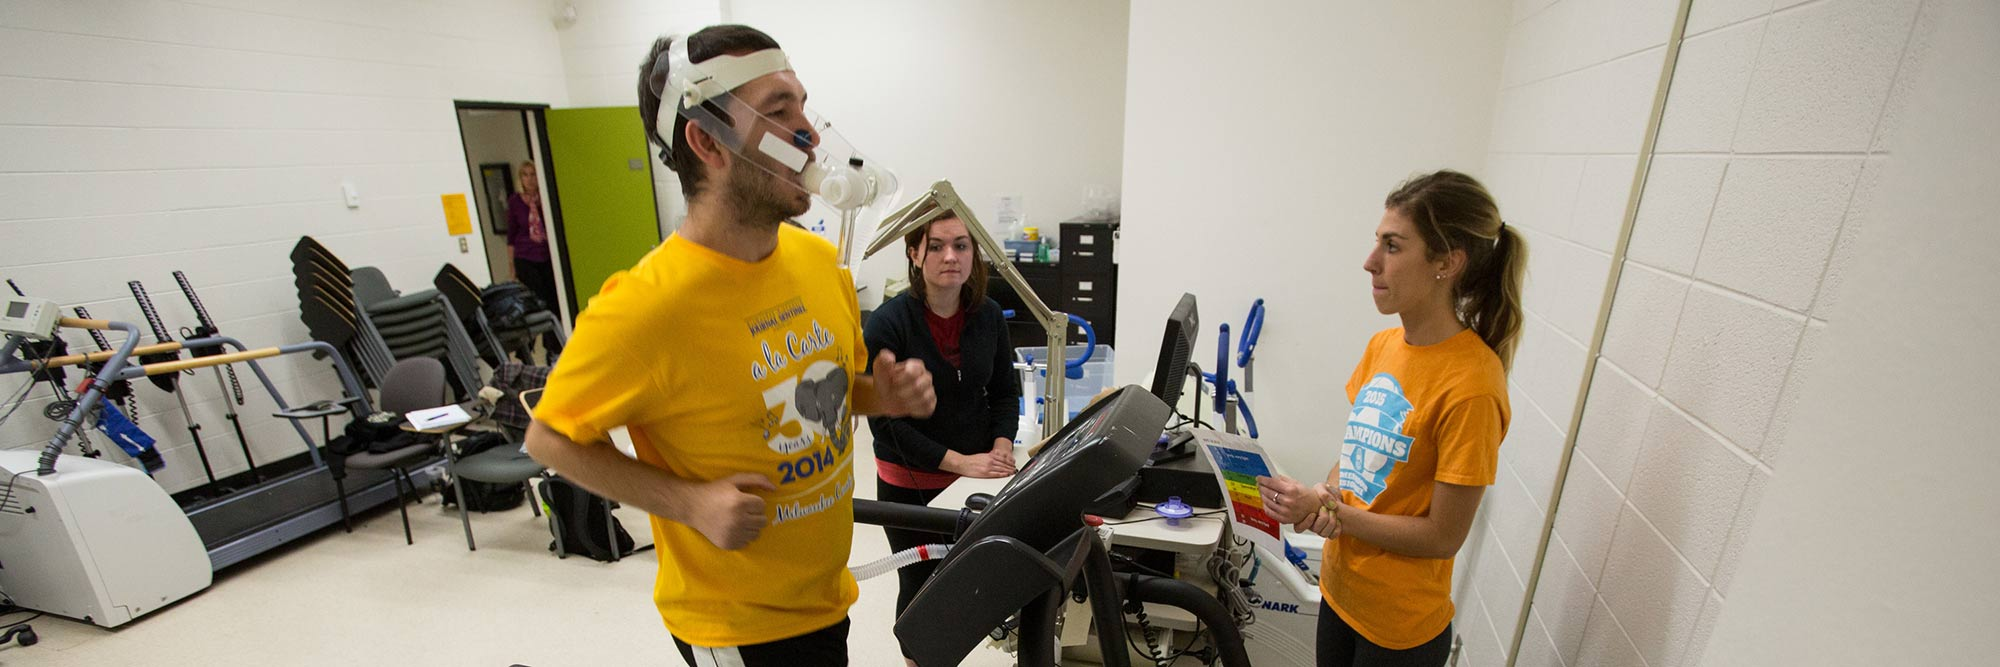 banner-kinesiology-minor BS A student on a treadmill with two other students monitoring.